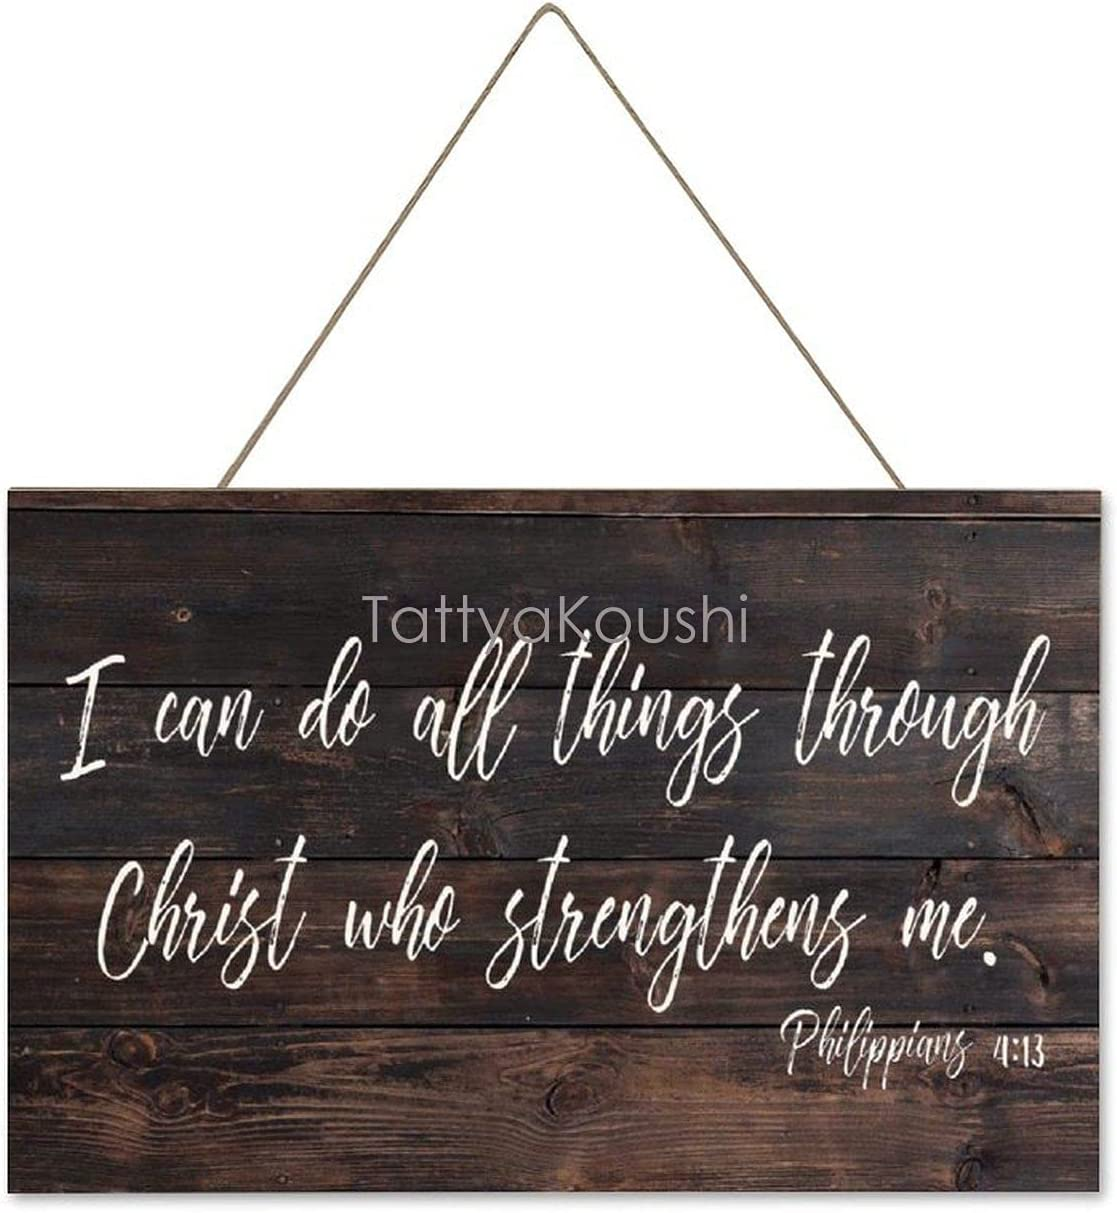 Funny Wall Decor Sign, Farmhouse Rustic Decorations Wall Art, I Can Do All Things Through Christ Who Strengthens Me Wooden Plaque, New Home Gifts, 10 x 16 Inch